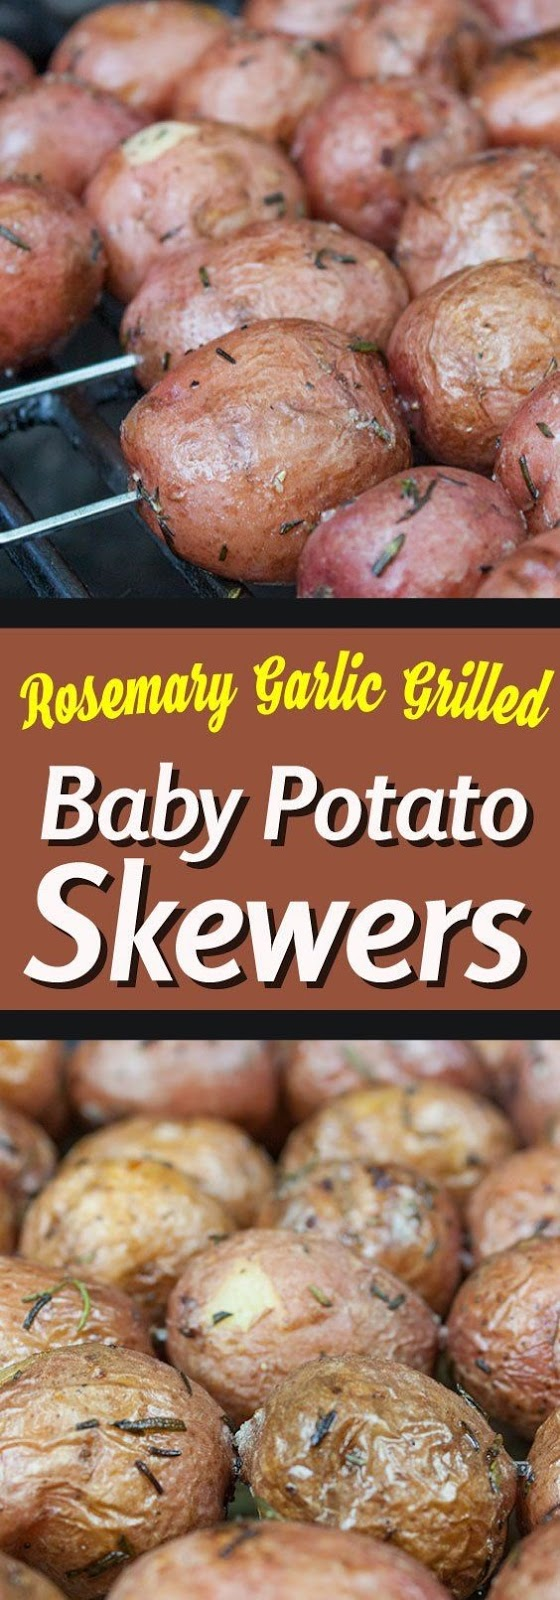 Rosemary Garlic Grilled Baby Potato Skewers